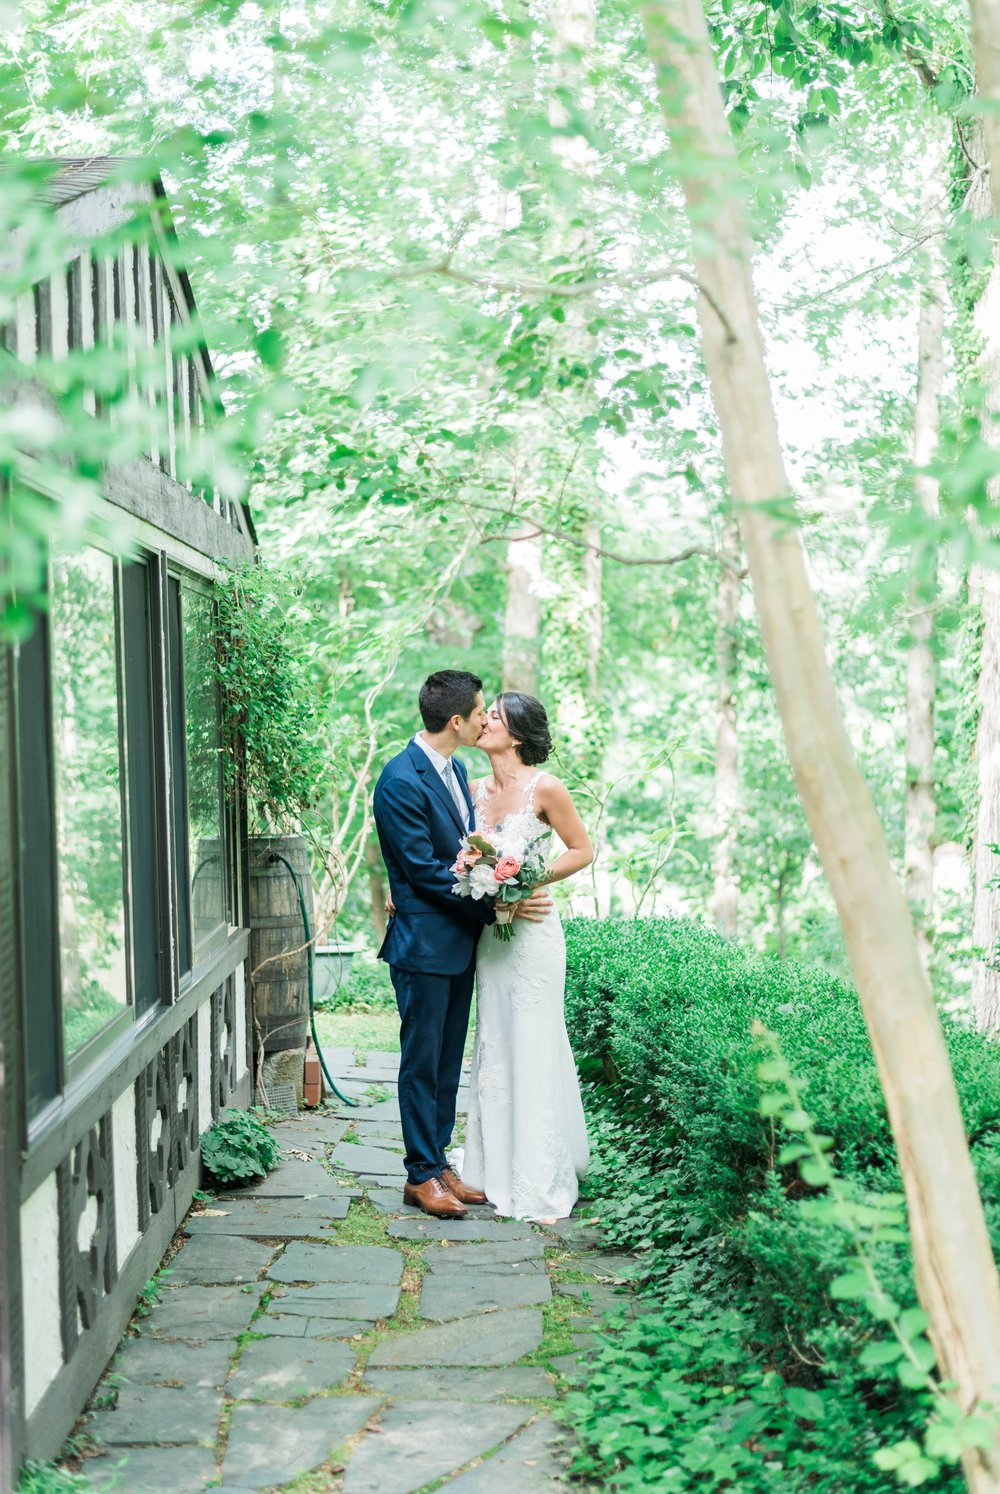 Williamsburgvawedding_backyardwedding_virginiaweddingphotographer_lynchburgweddingphotographer_PaulAliya 24.jpg